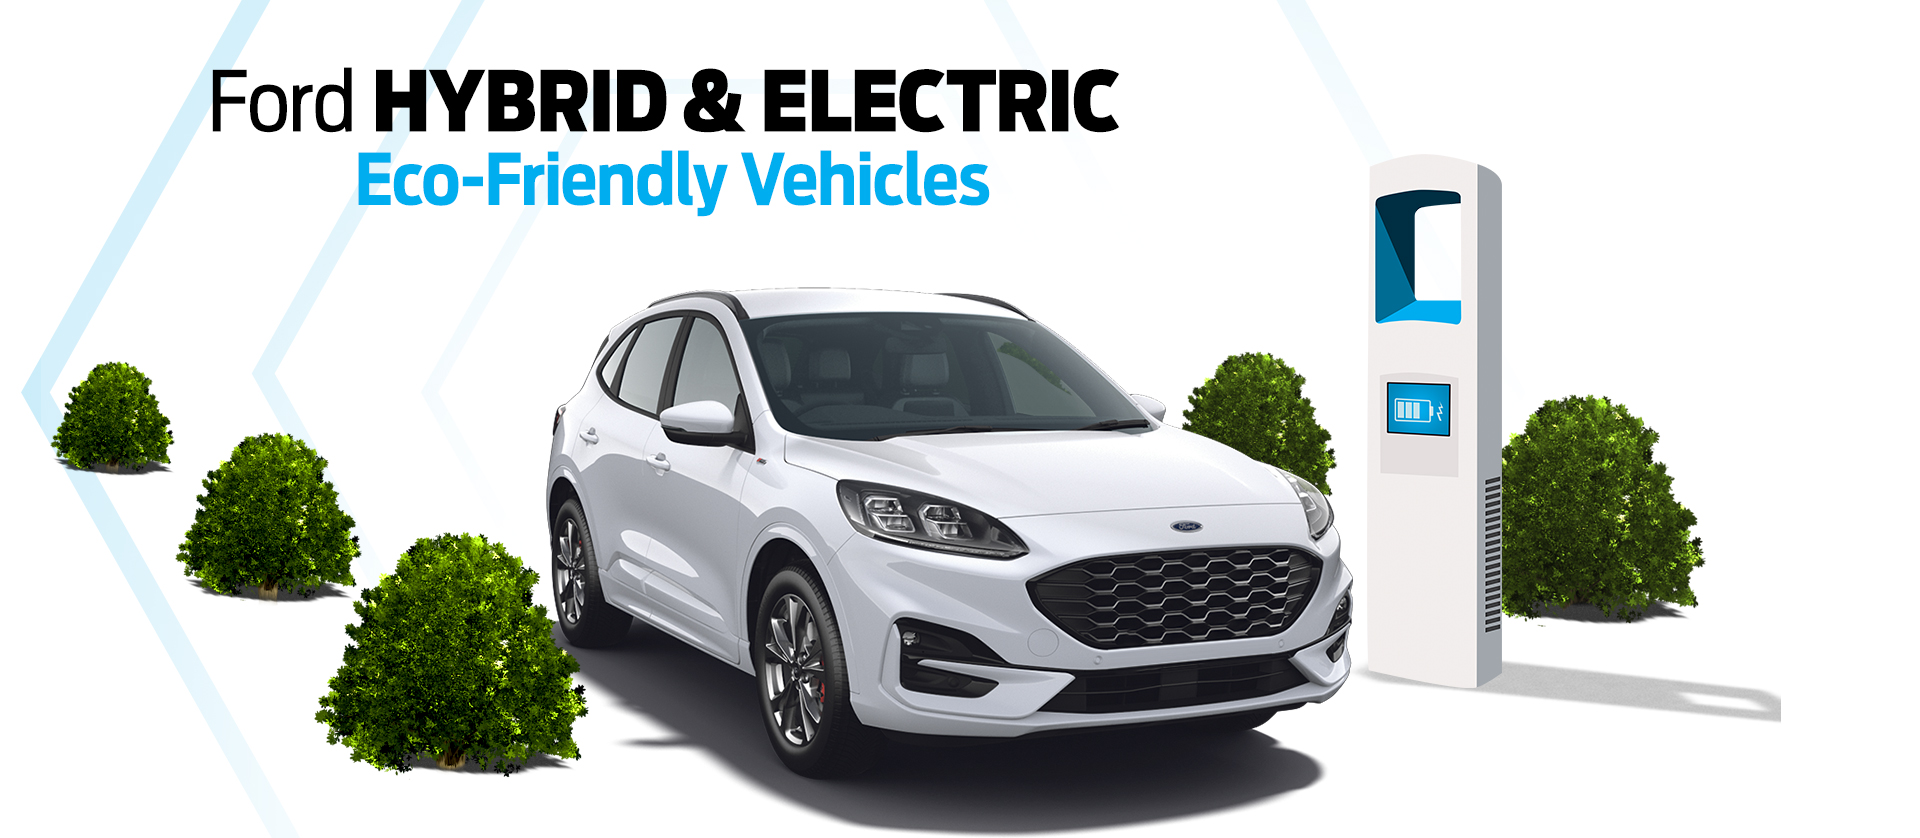 Ford Electric & Hybrid Range